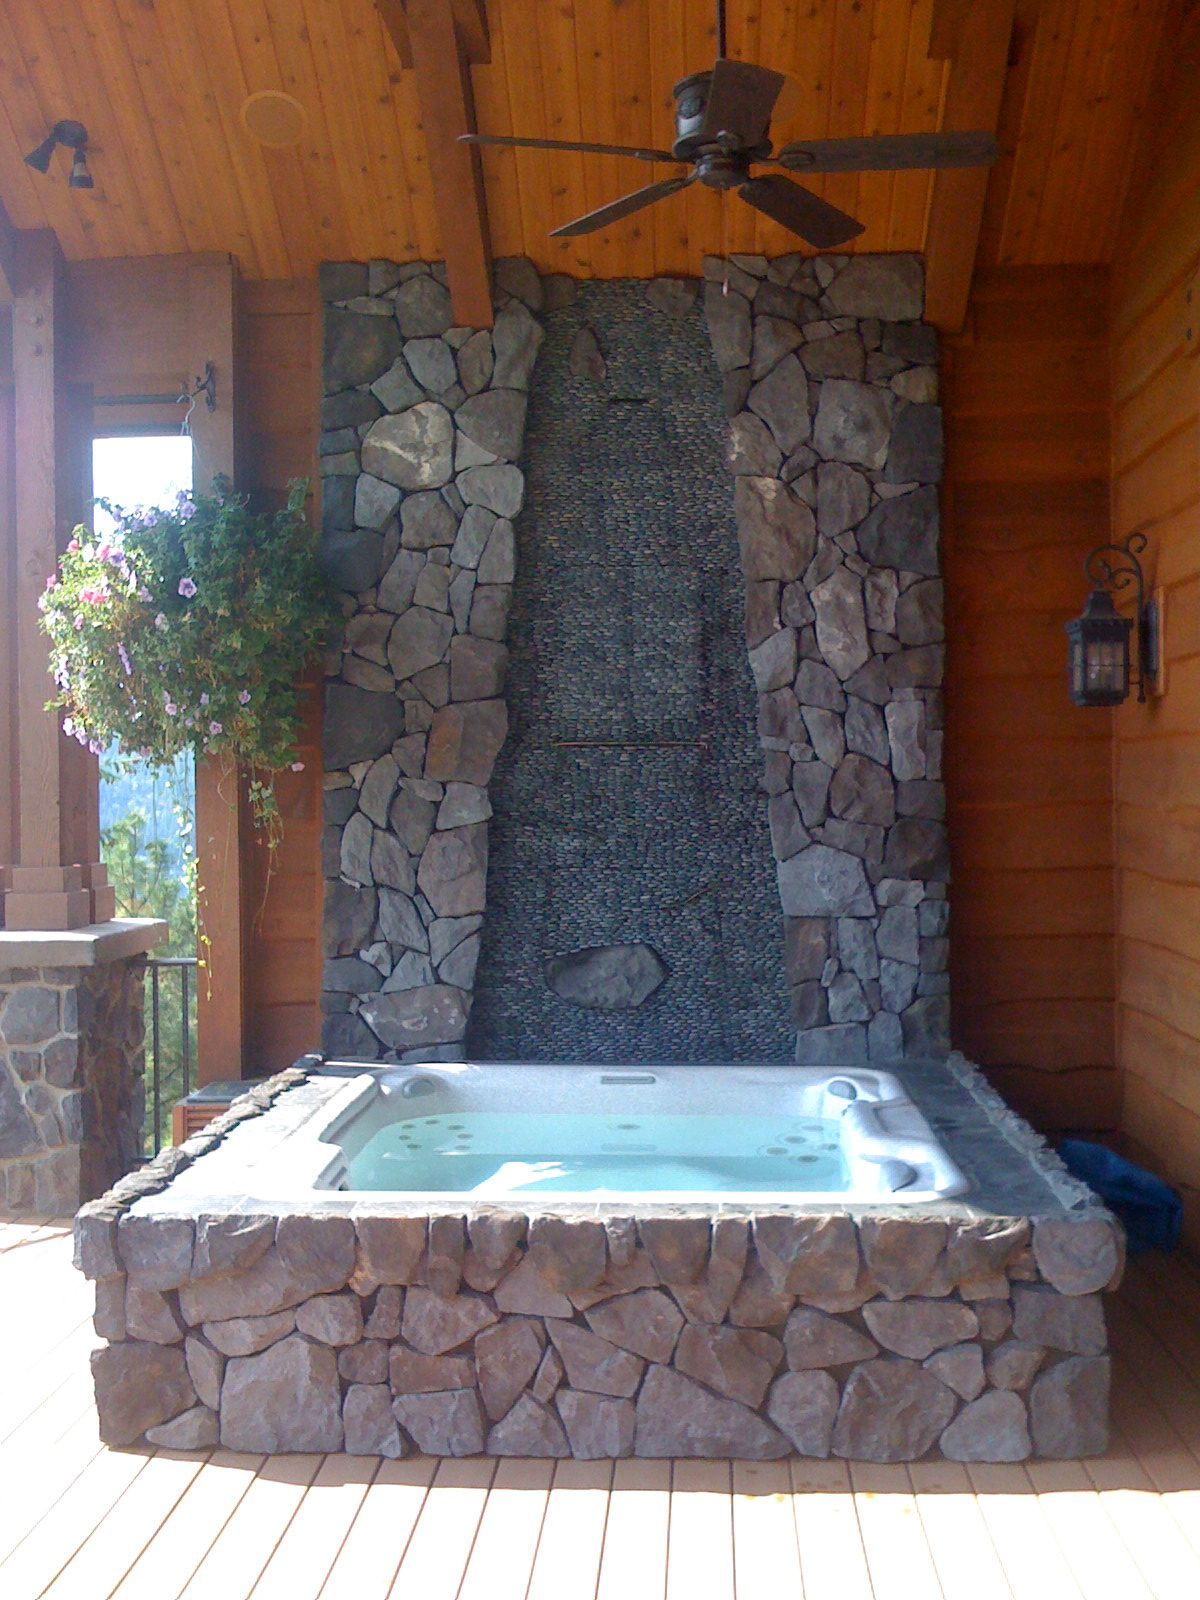 choice granite customers spokane tiles how often of resource at information cornerstone and amazed countertops go the colors as in our supplier we for notice are to